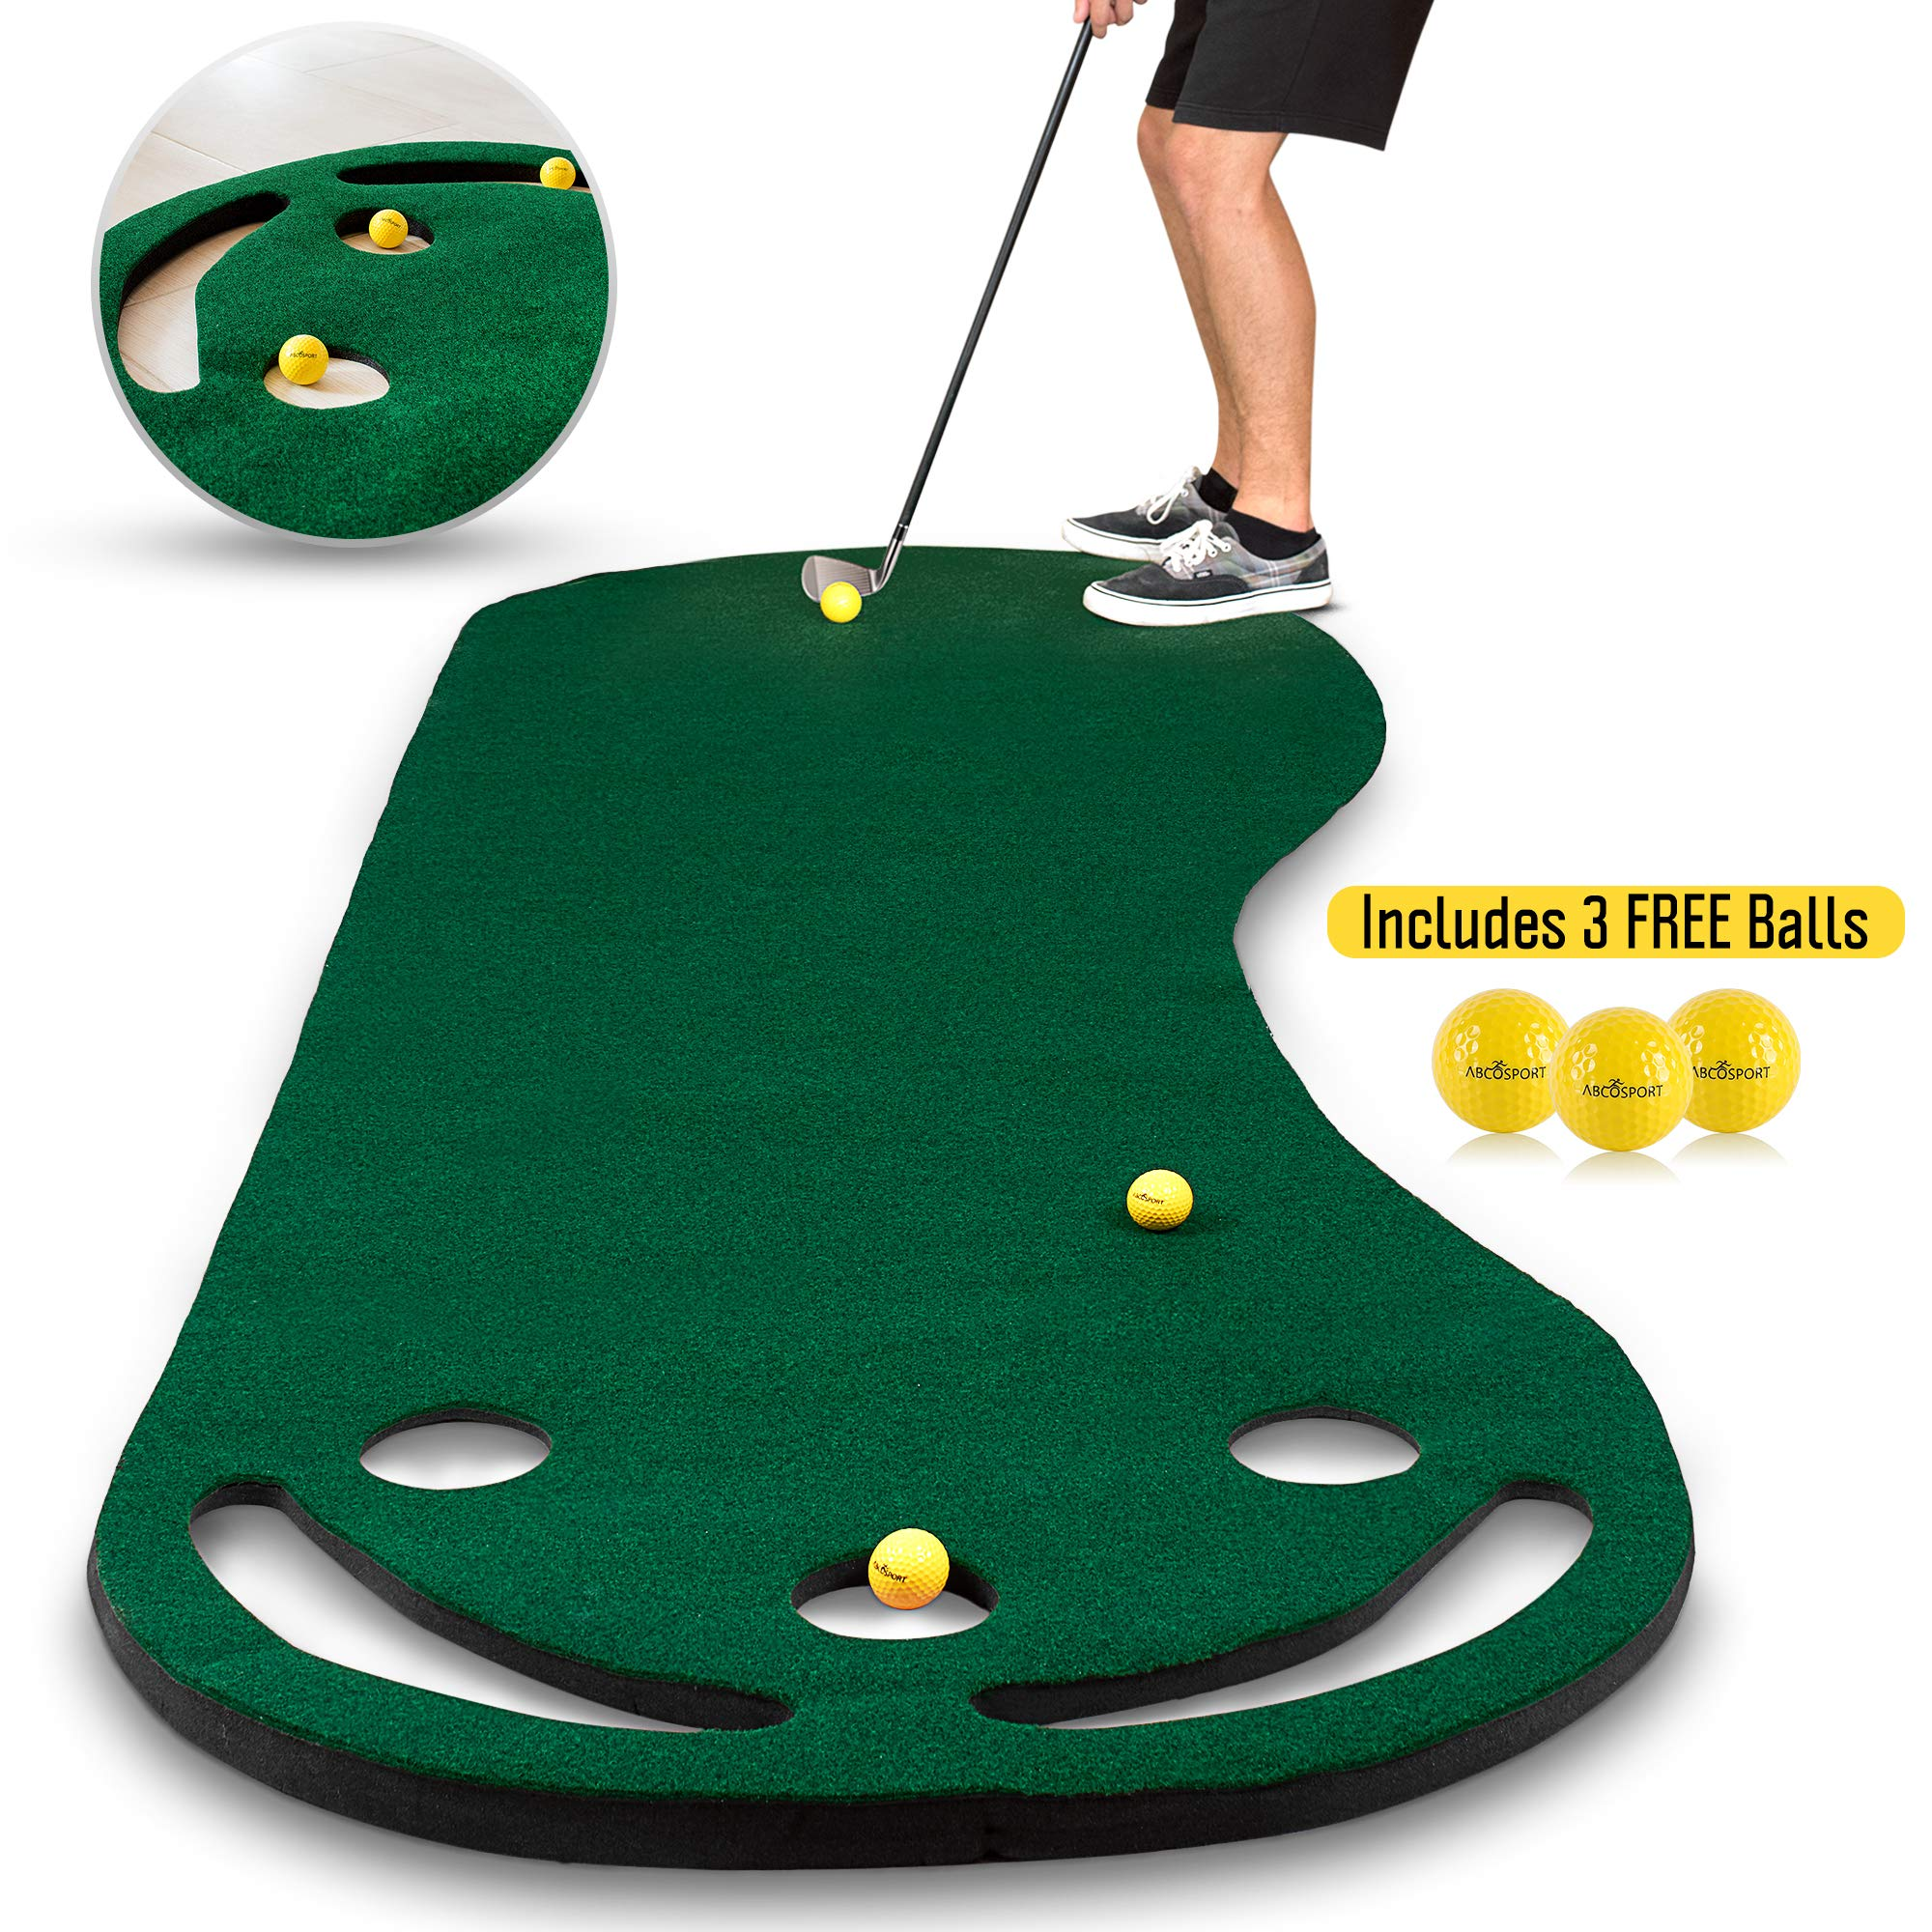 Abco Tech Golf Putting Green Grassroots Mat - 9ft x 3ft - Outdoor and Indoor Use - Perfect for Practicing and Training - Includes Free 3 Yellow Golf Balls by Abco Tech